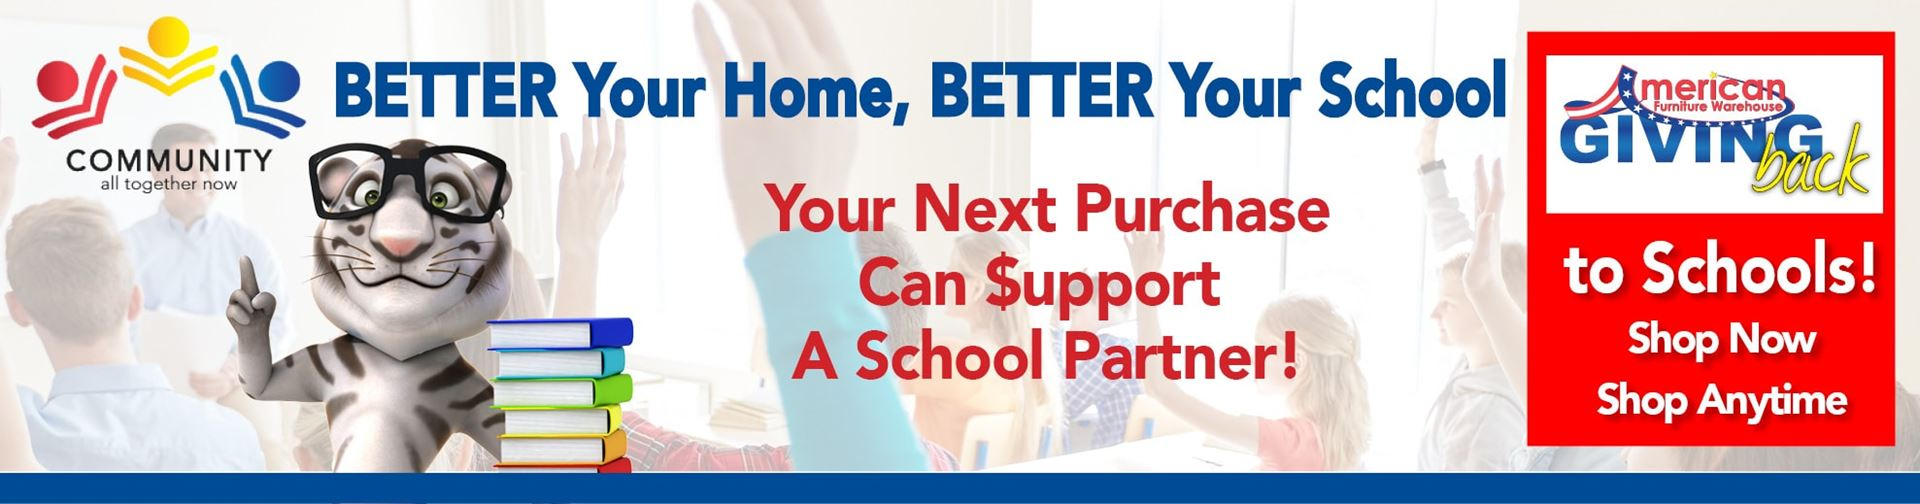 BETTER Your Home, BETTER Your School During the AFW Back To School Event